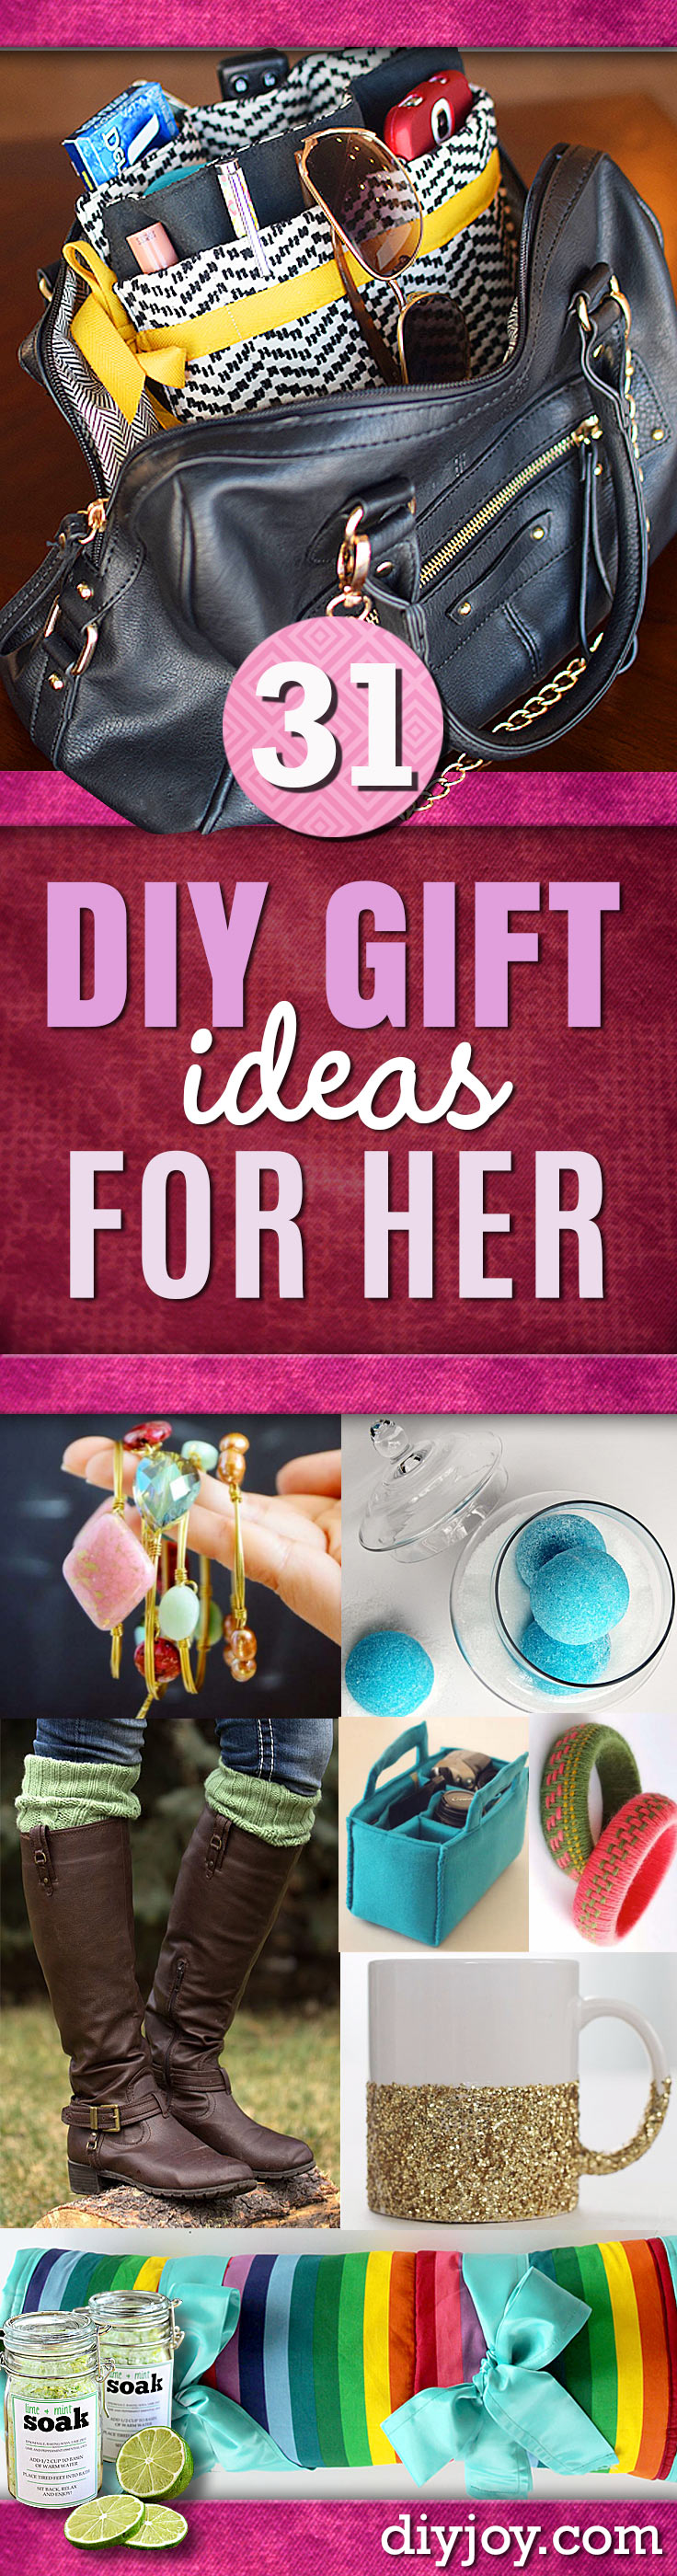 Pinterest christmas gift ideas for mom